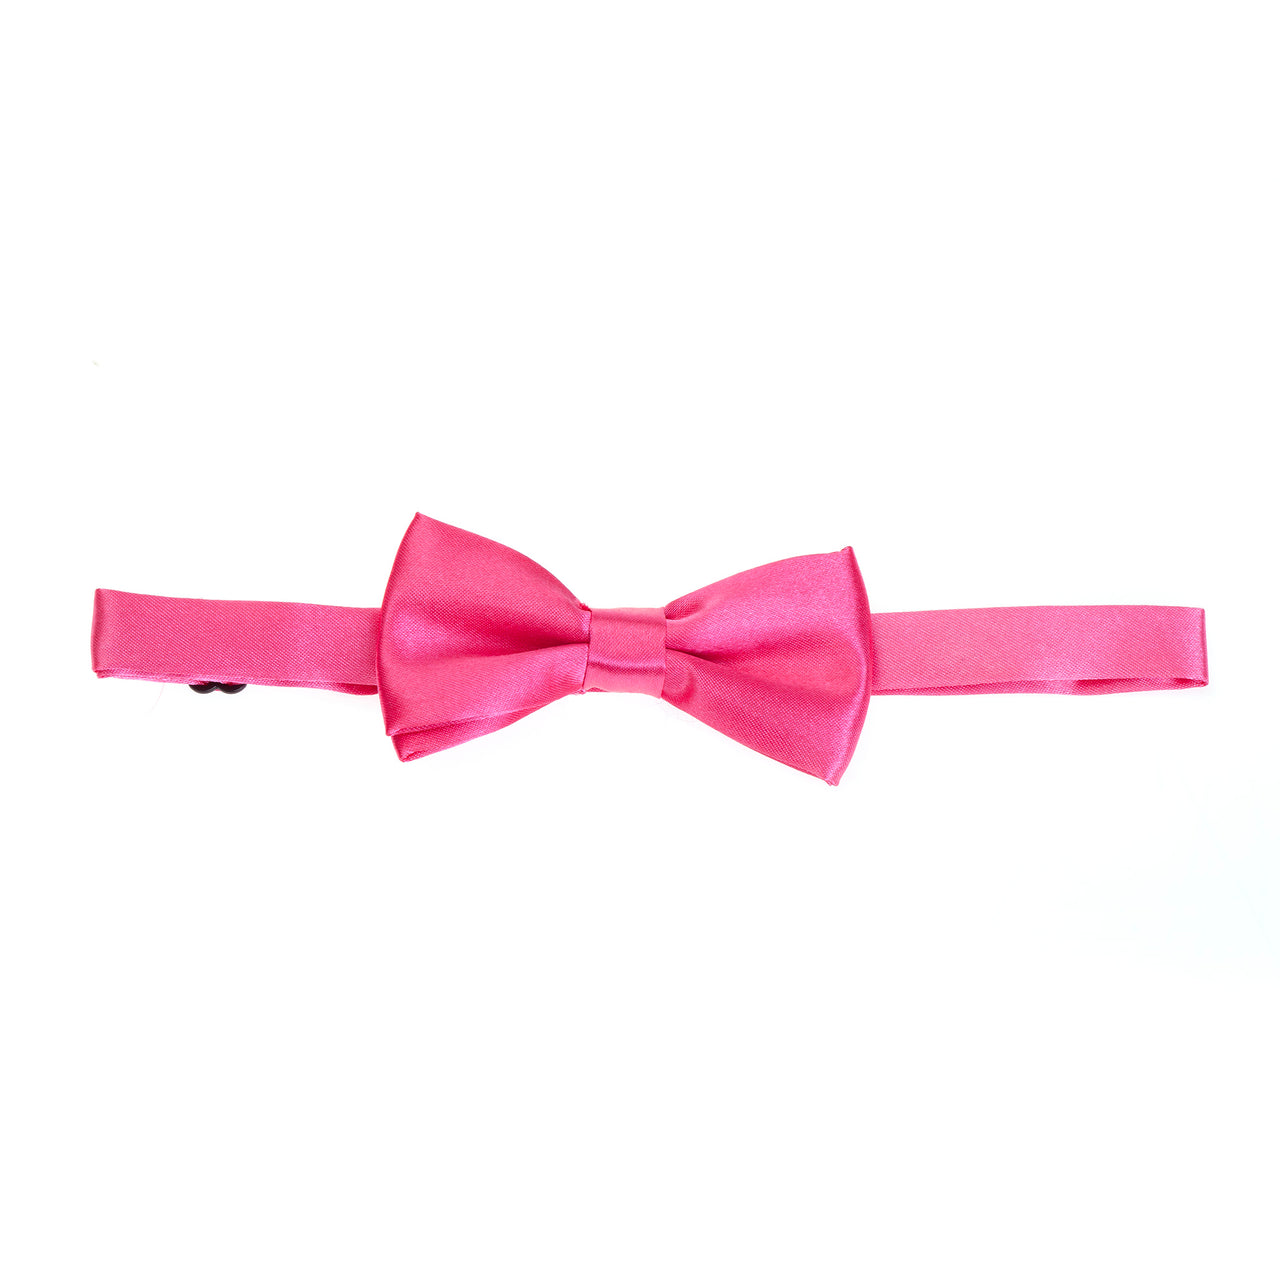 Kids Pre-tied Plain Satin Bow Tie - Hot Pink